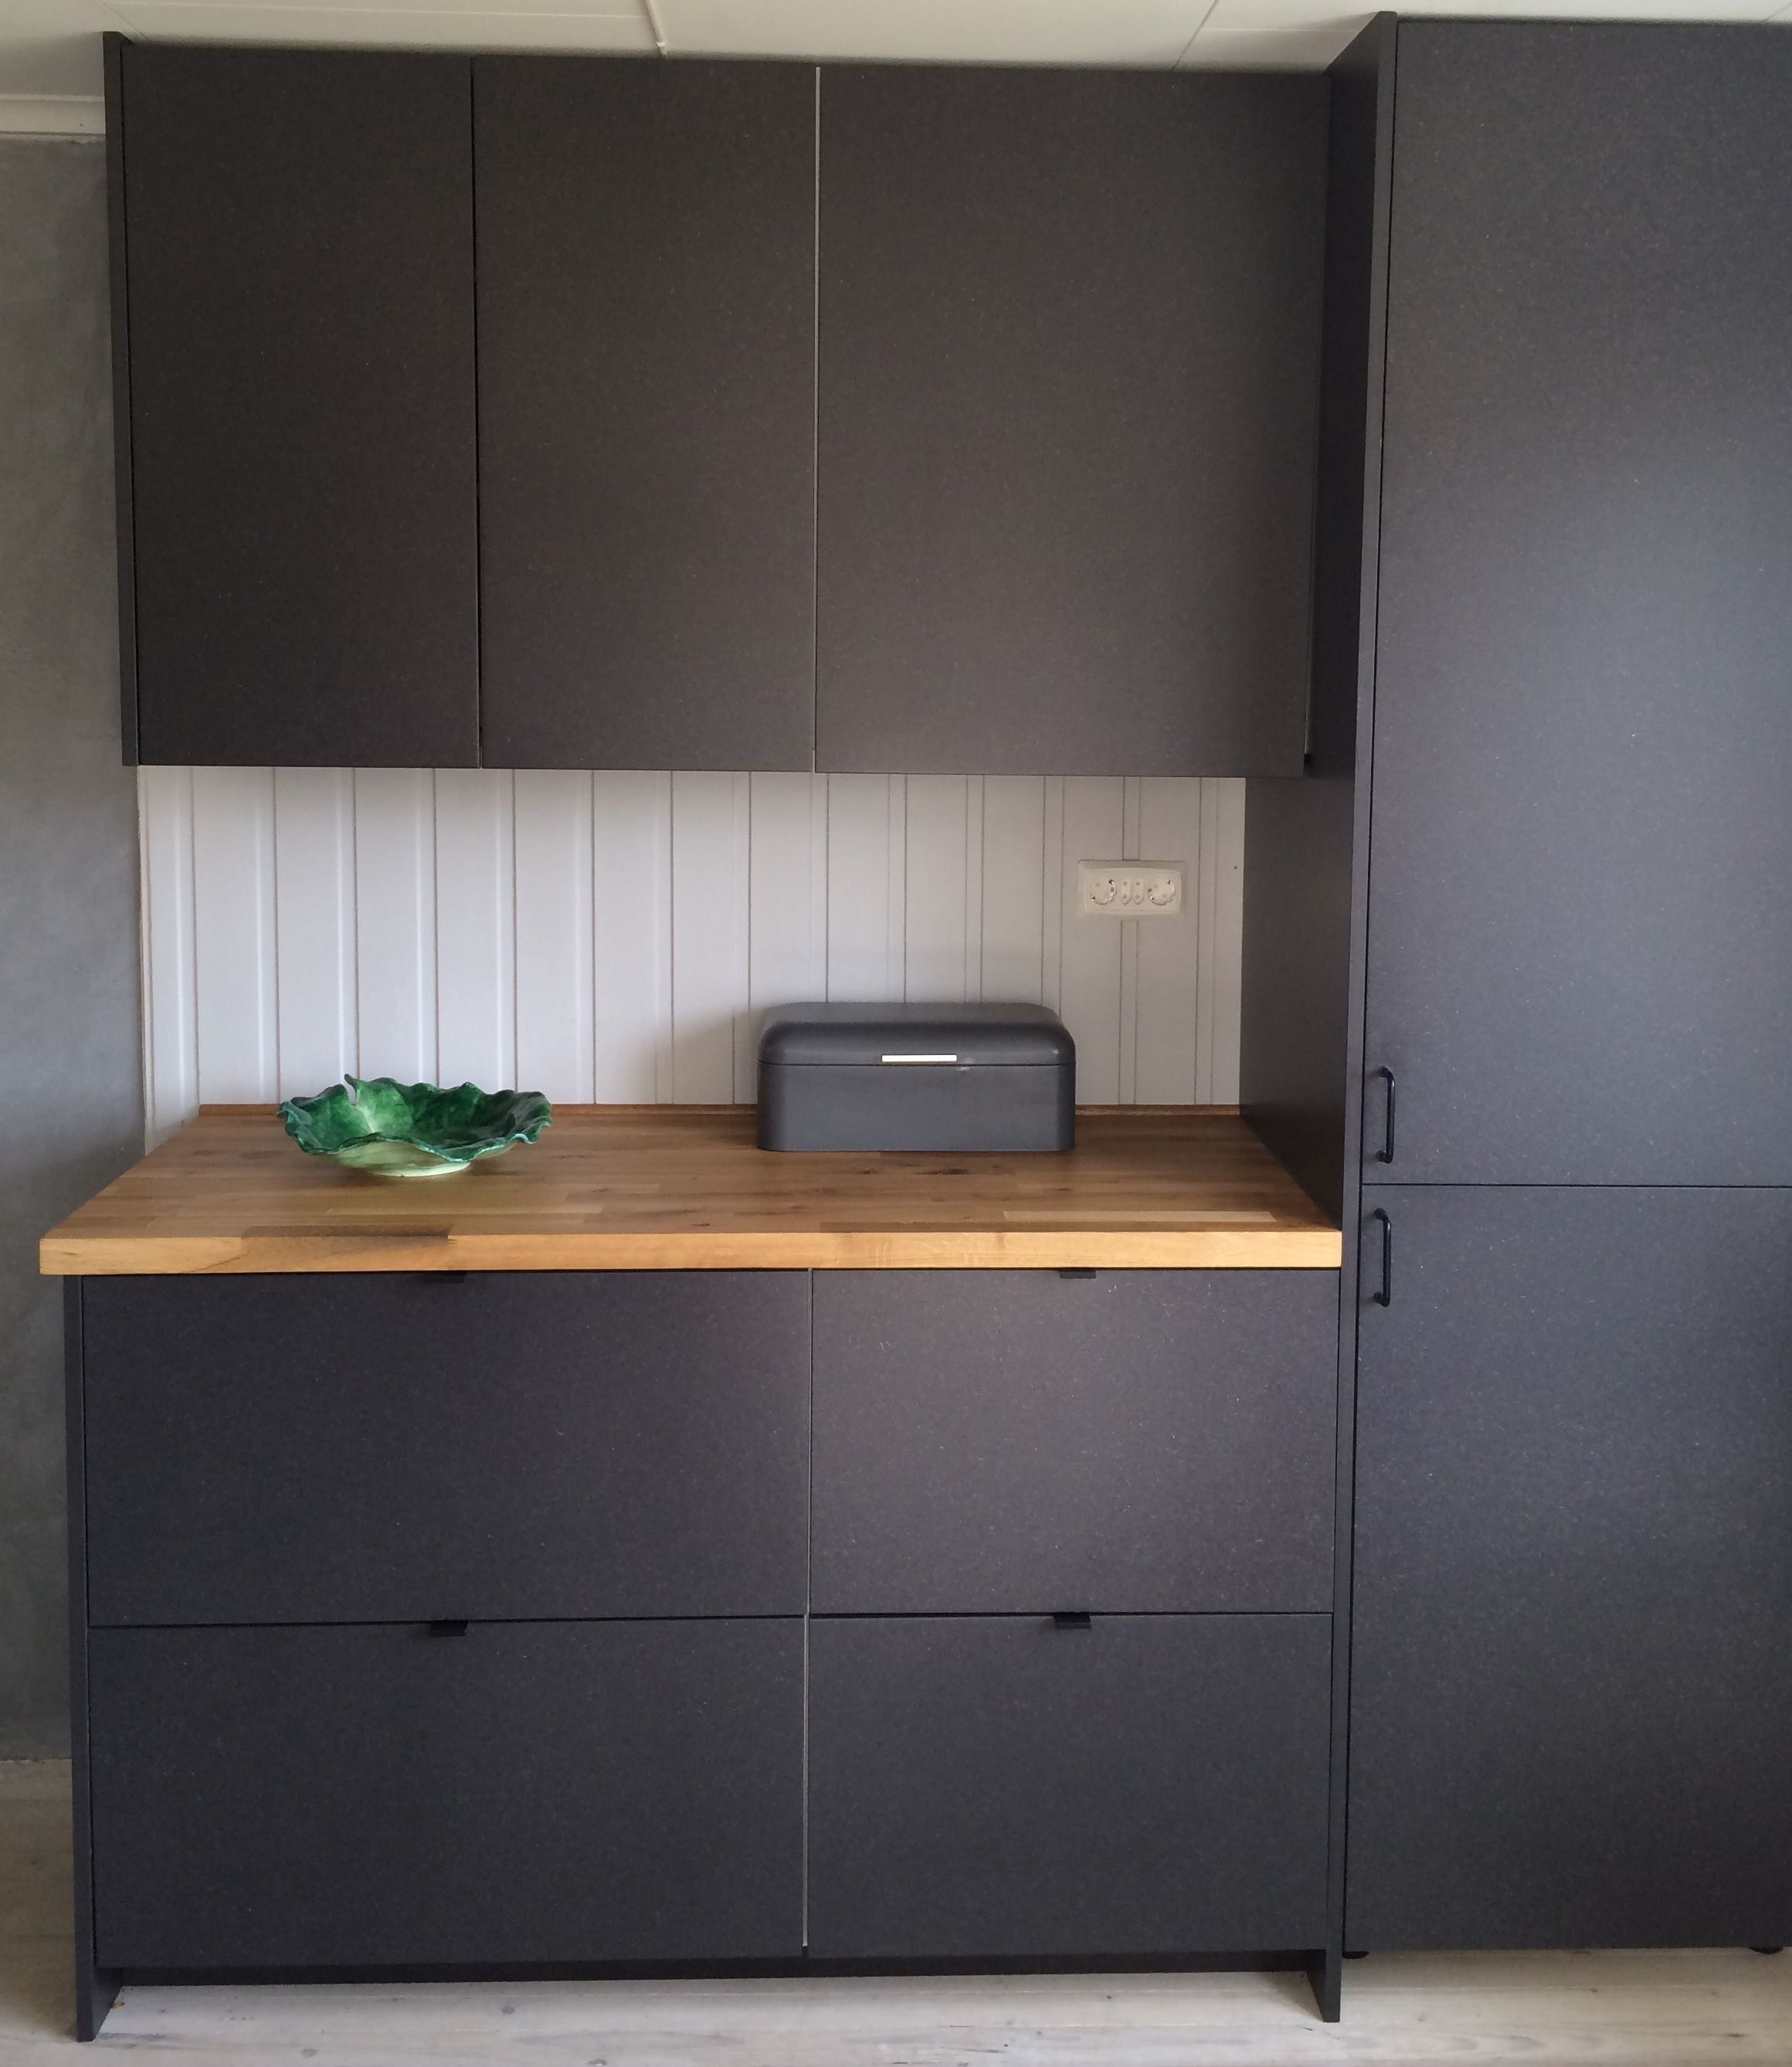 Valchromat IKEA kitchen studio10 in 2019 | Kitchen decor ...